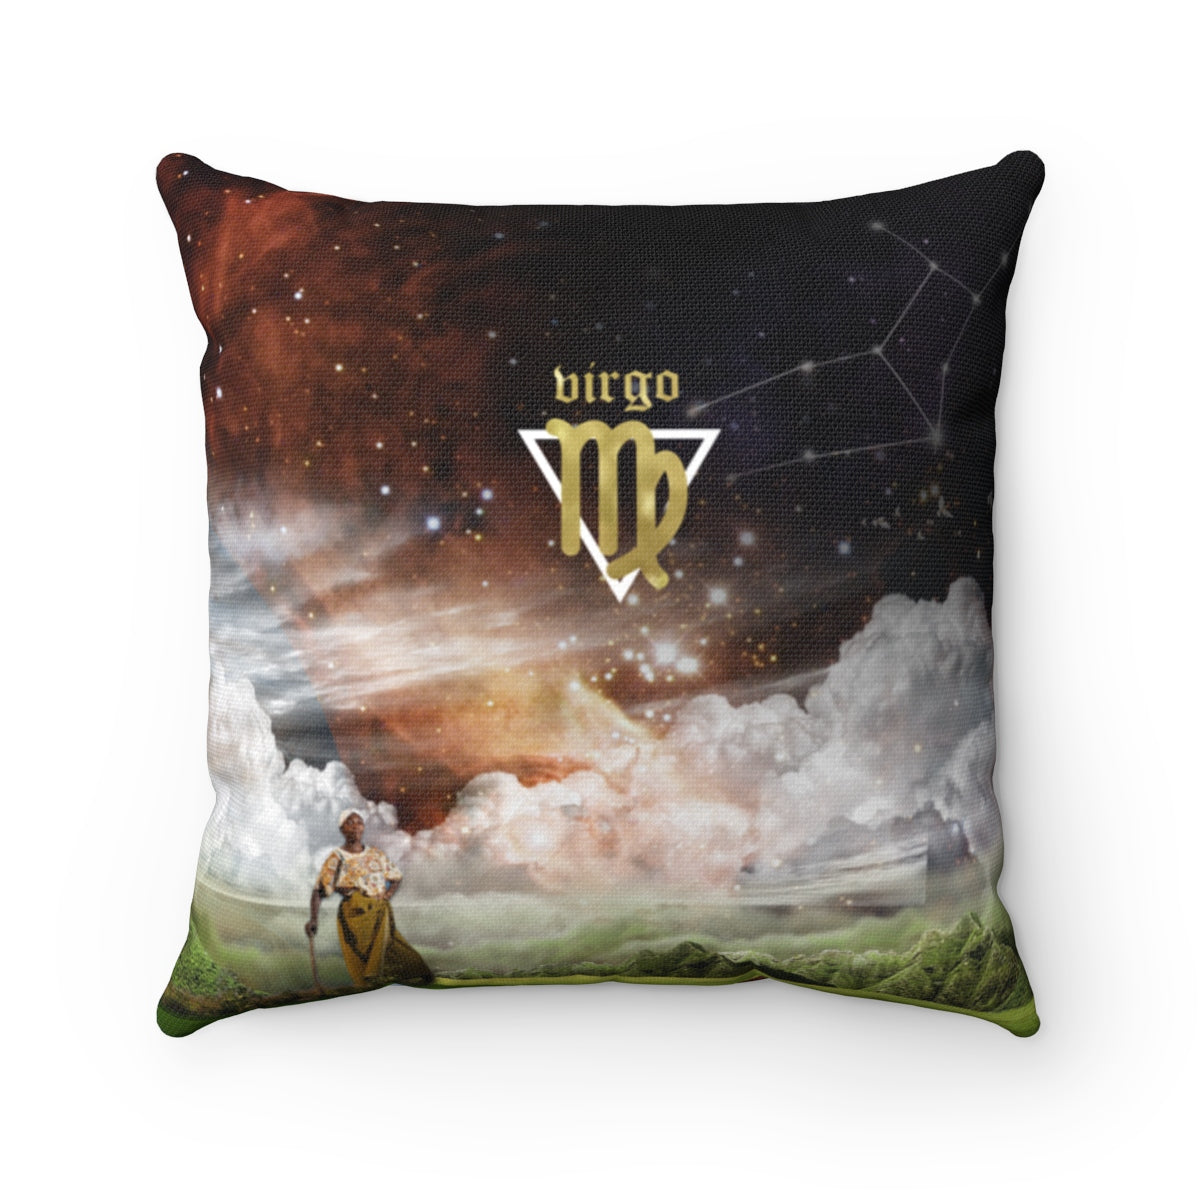 Virgo Pillow - #ChildishZodiac